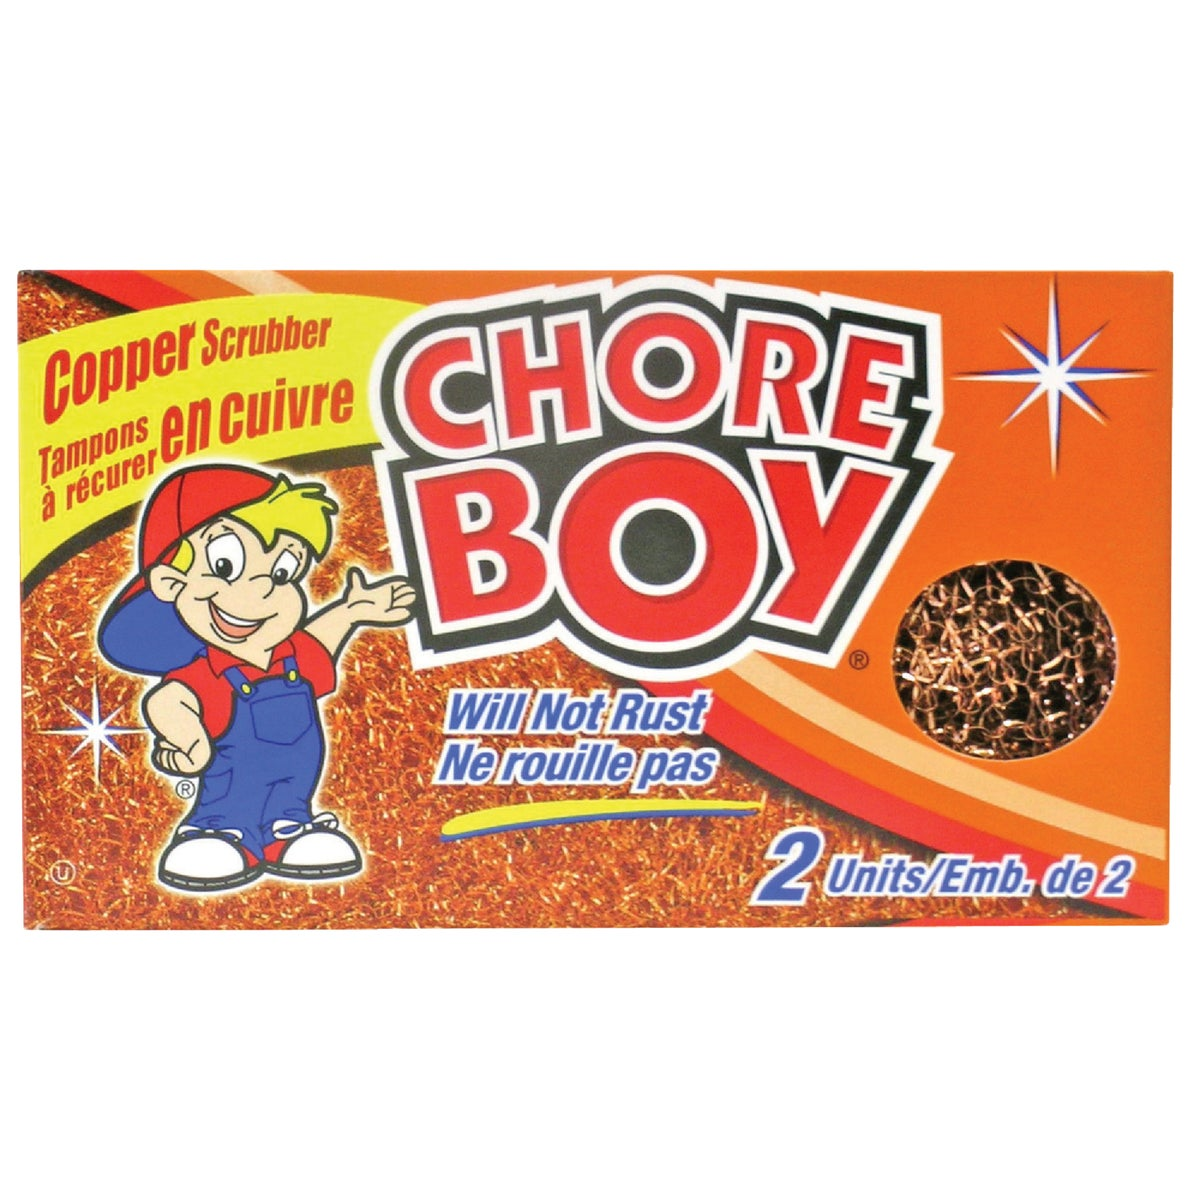 COPPER CHORE BOY - 00215 by Spic & Span Co